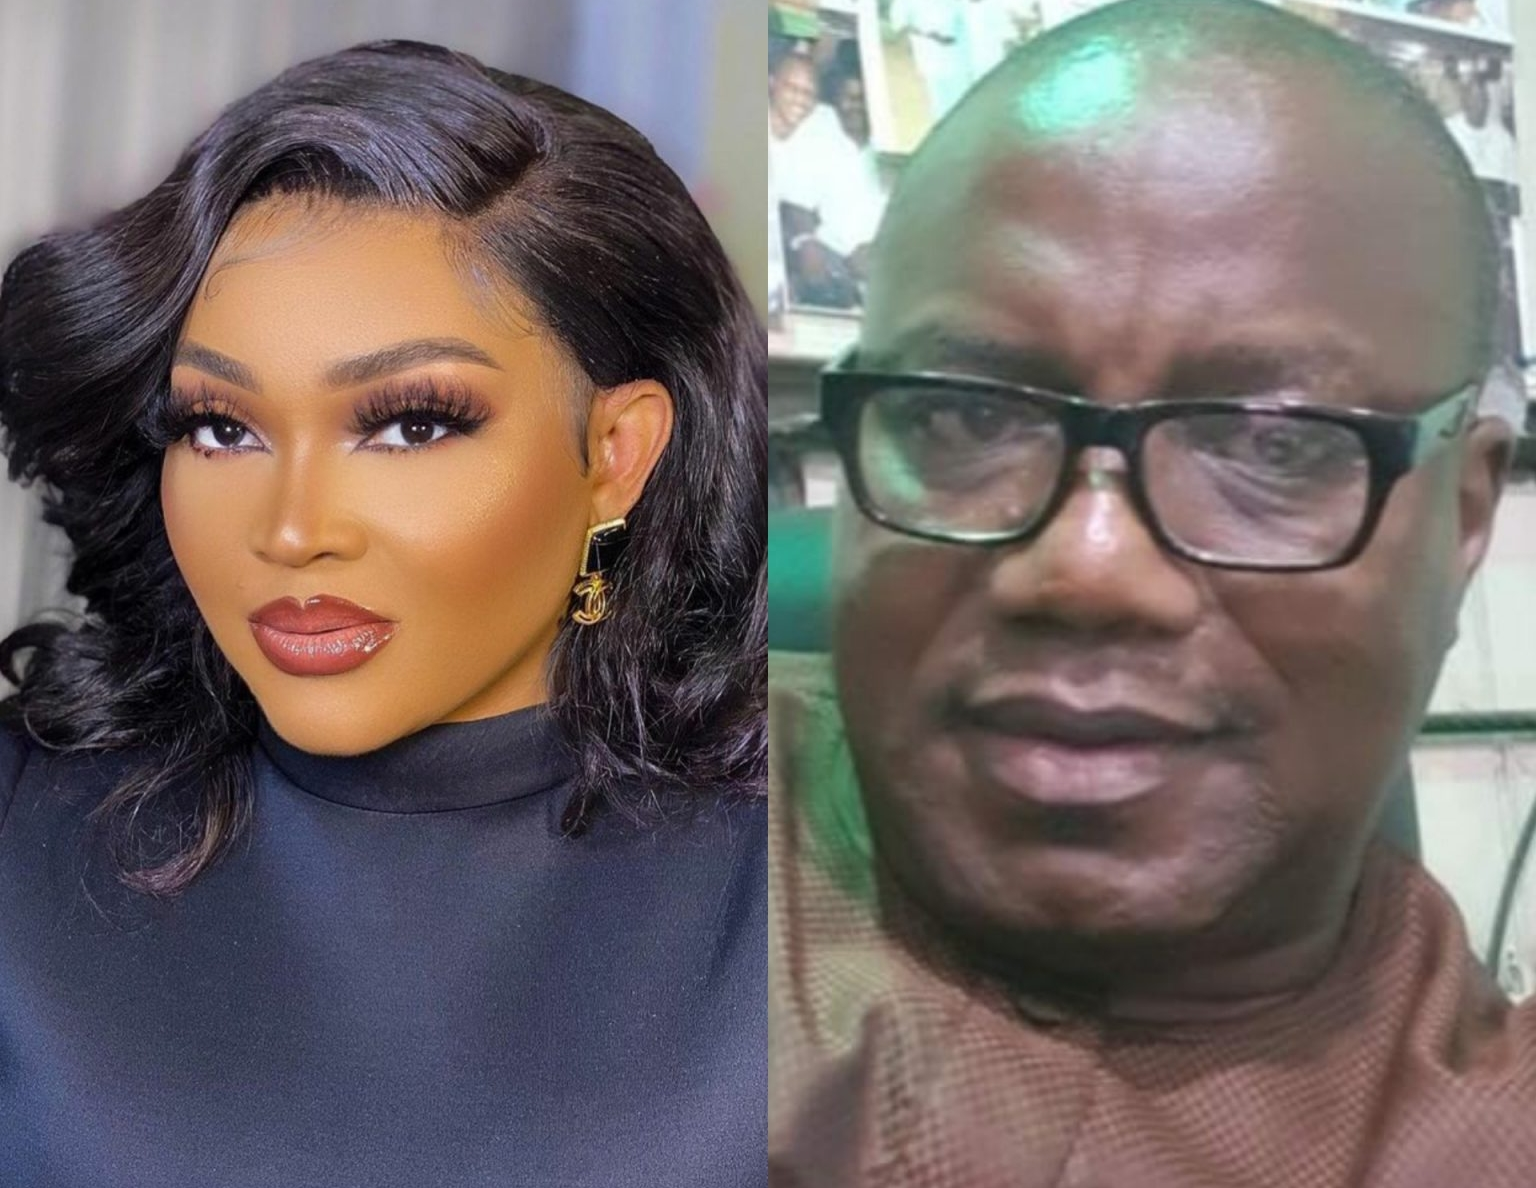 I'll expose your prostitution, fake life – Lanre Gentry blasts Mercy Aigbe says he will expose